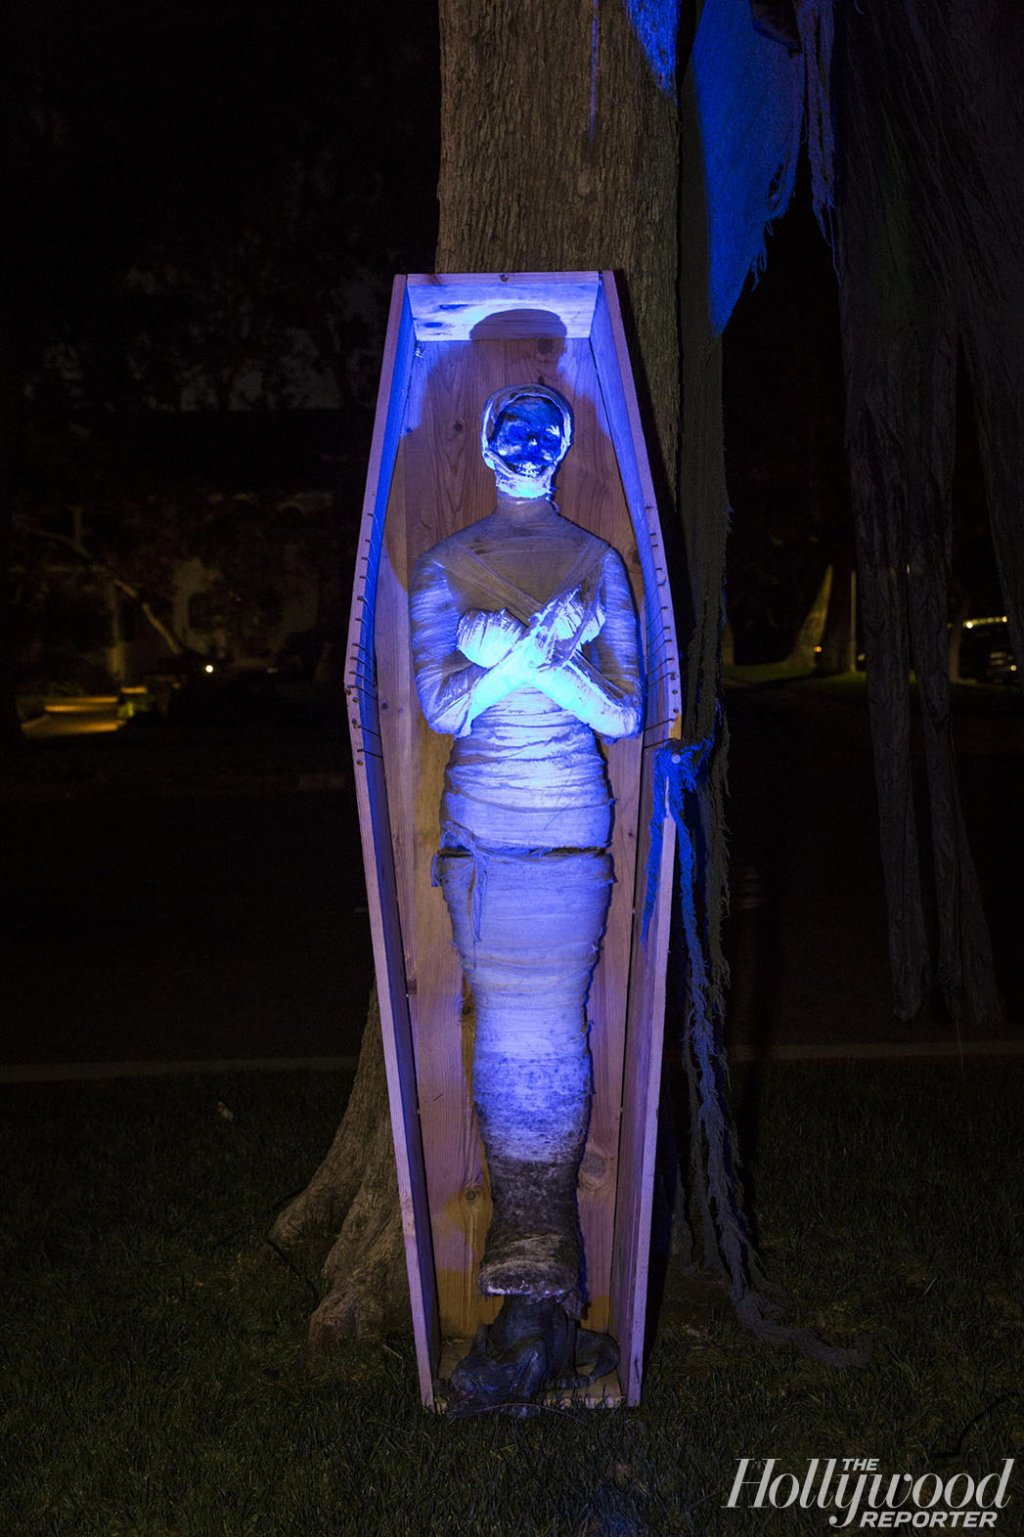 halloween Halloween Decoration in L.A. Homes THR HalloweenHouses 101616THR HalloweenHouses142